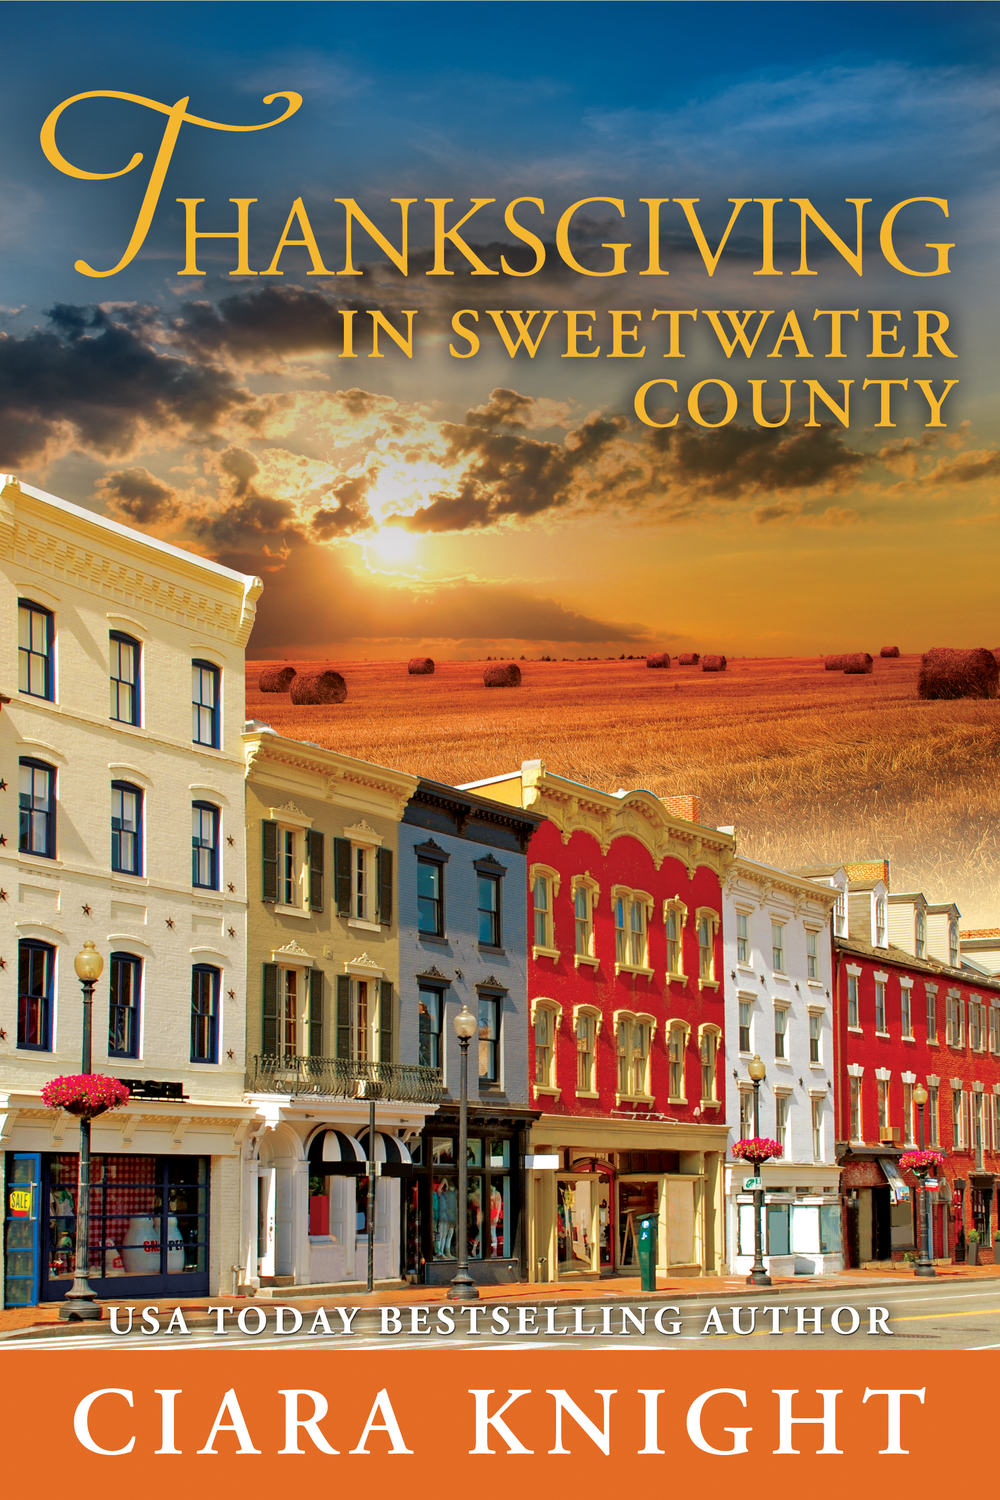 Thanksgiving in Sweetwater County Release!